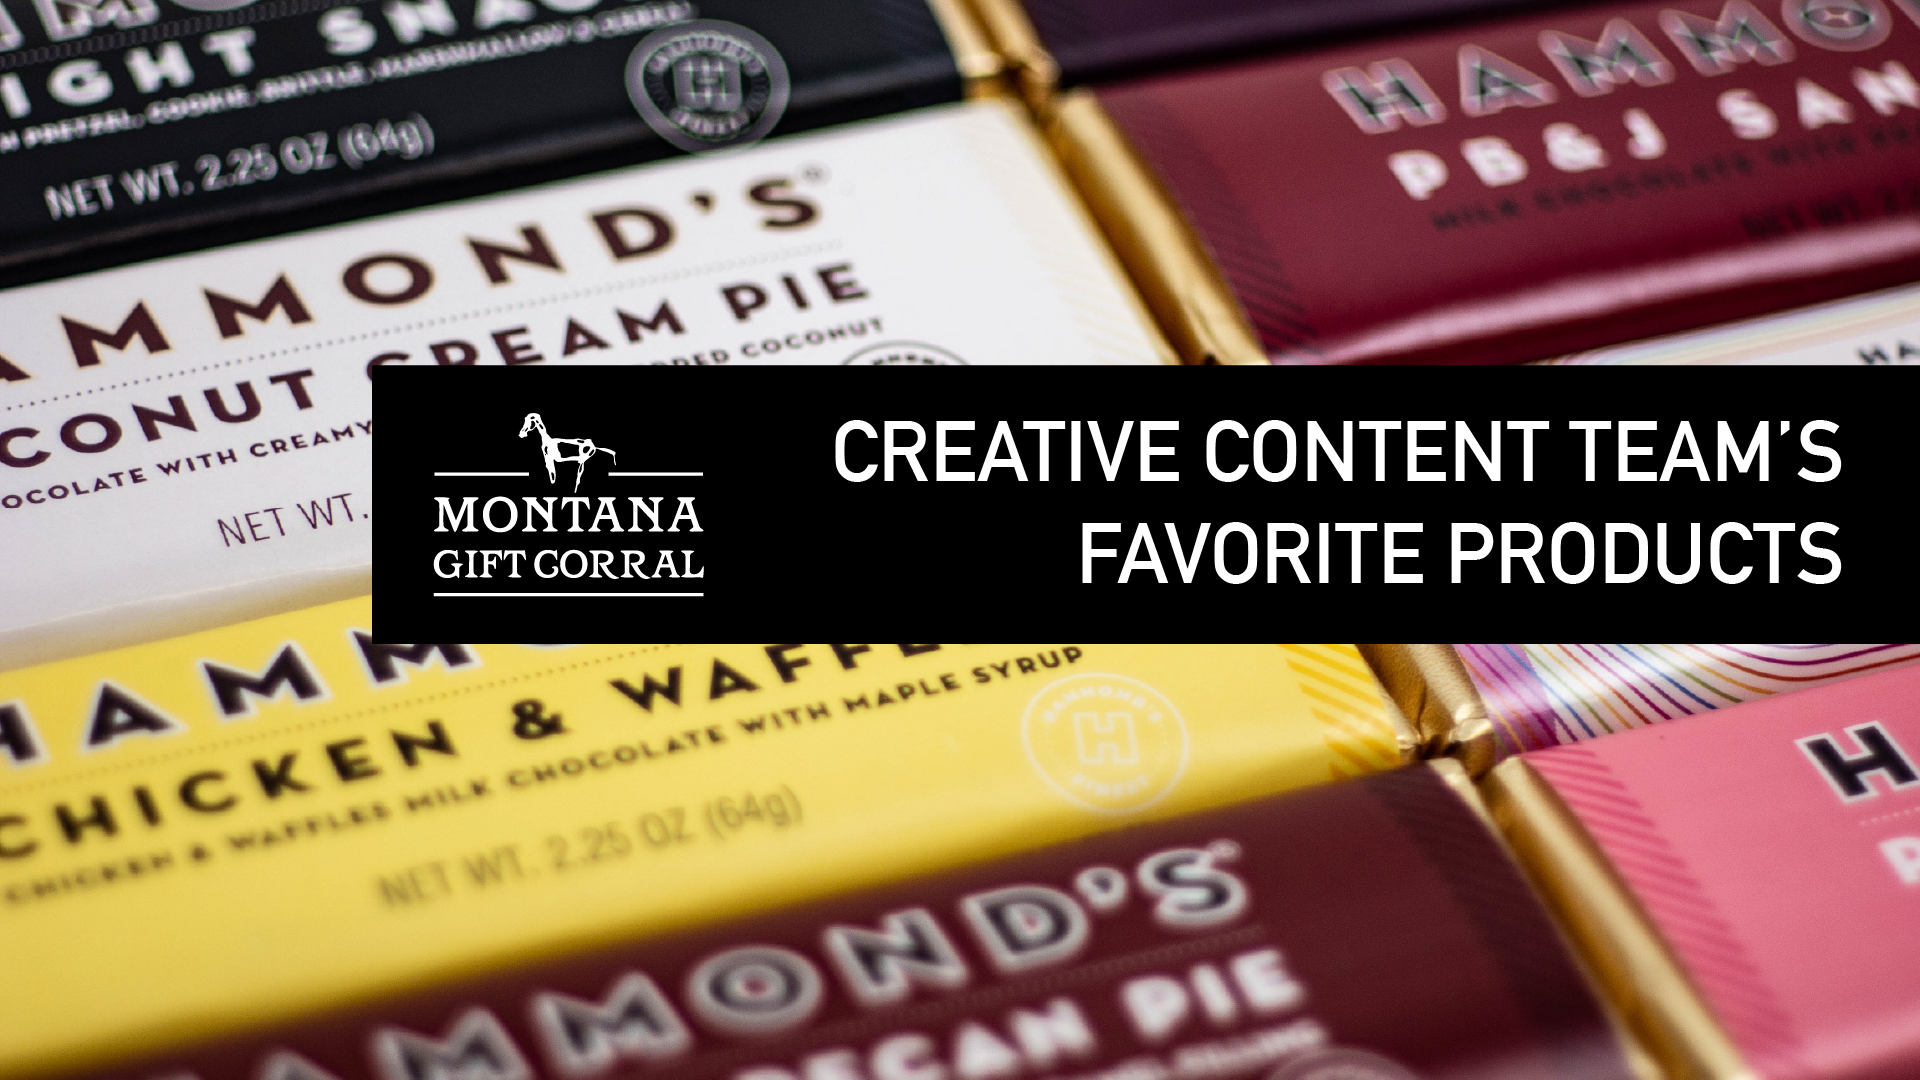 Creative Content Team's Favorite Things